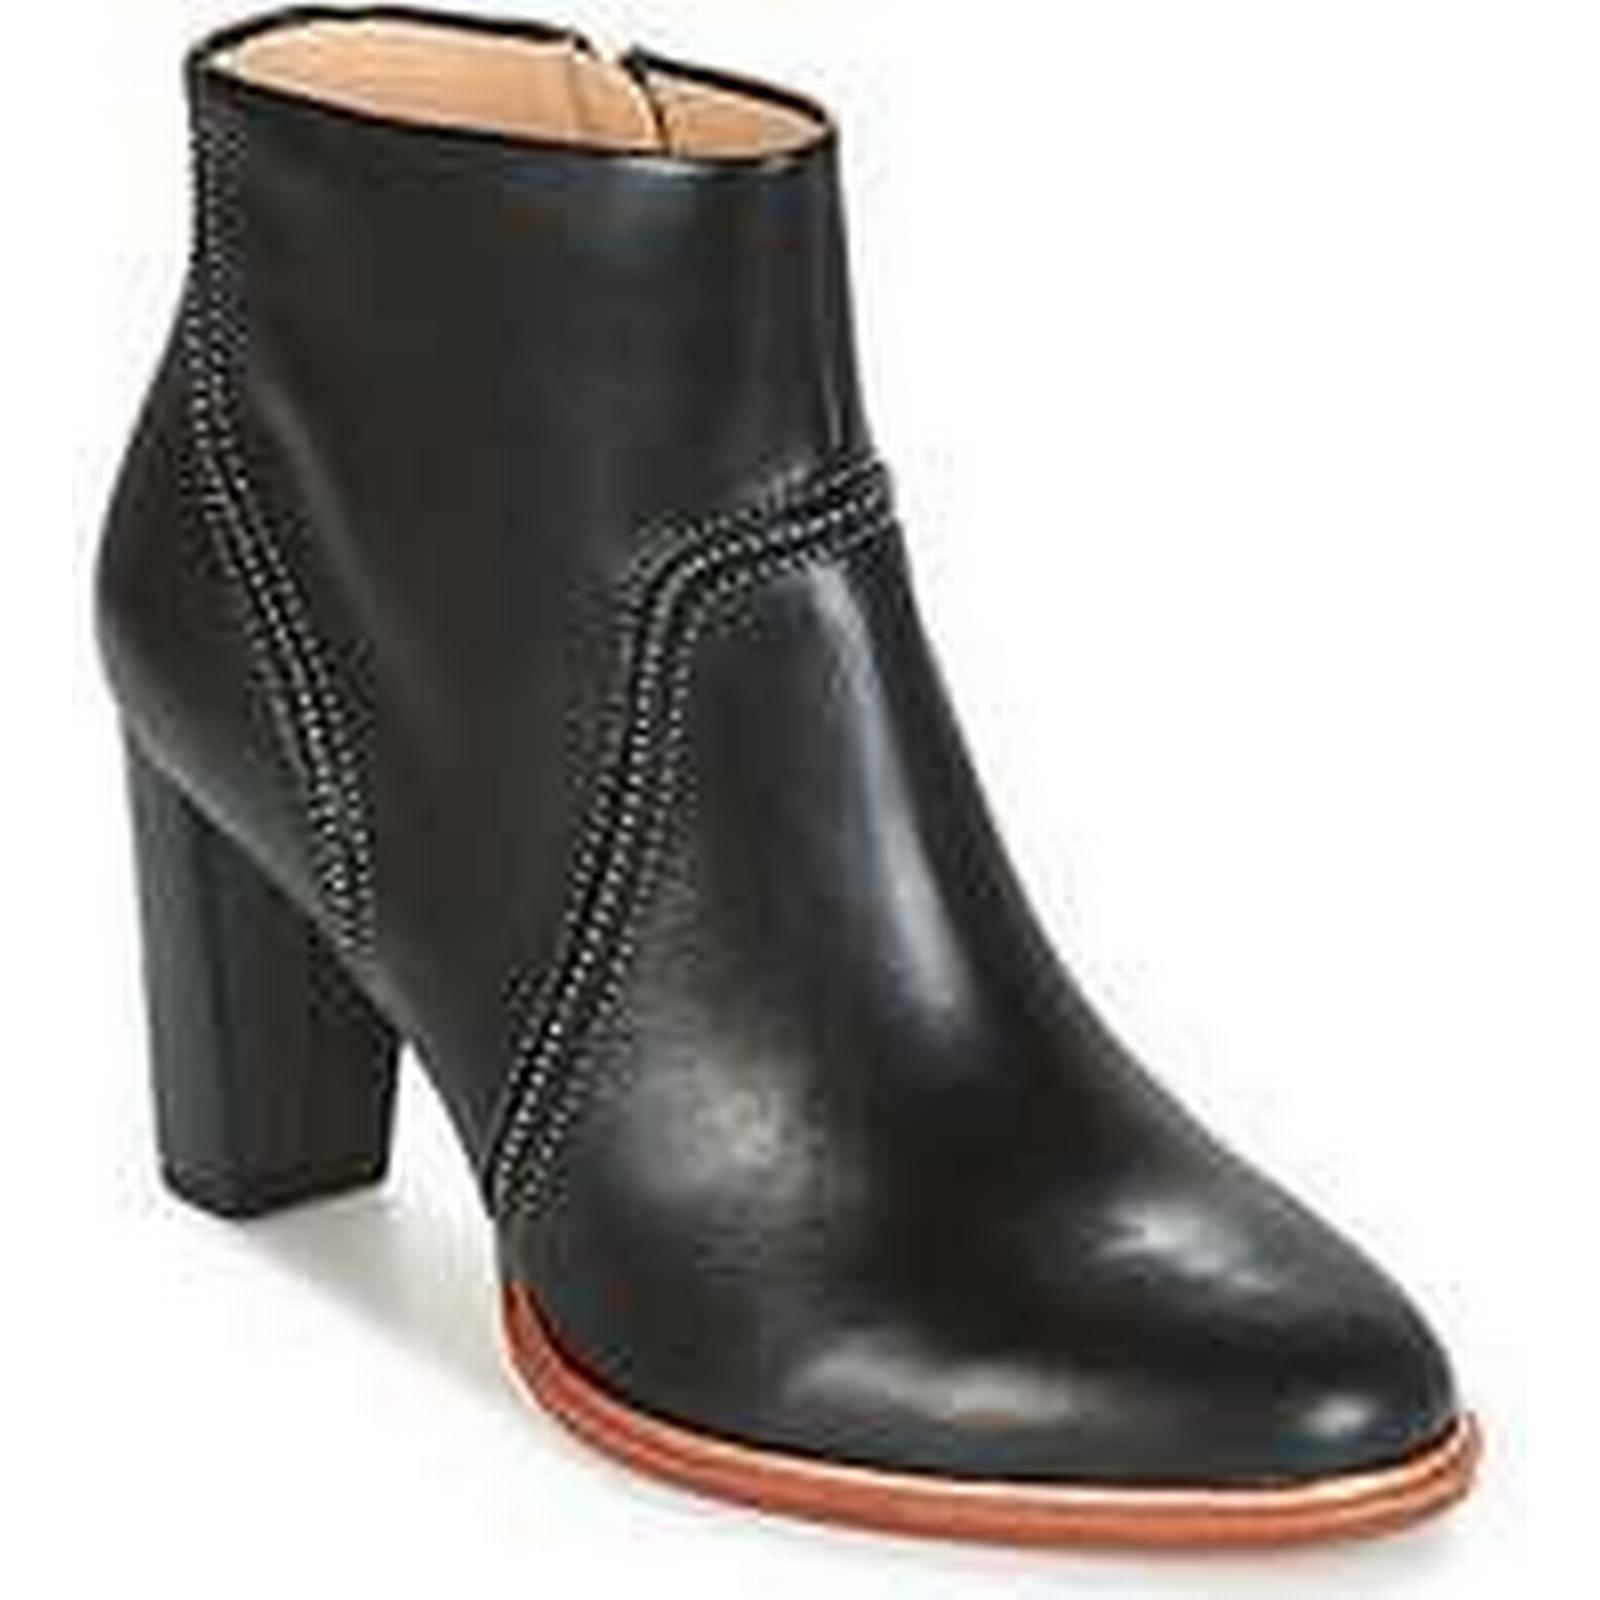 Spartoo.co.uk Low Clarks ELLIS BETTY women's Low Spartoo.co.uk Ankle Boots in Black 13f8ff